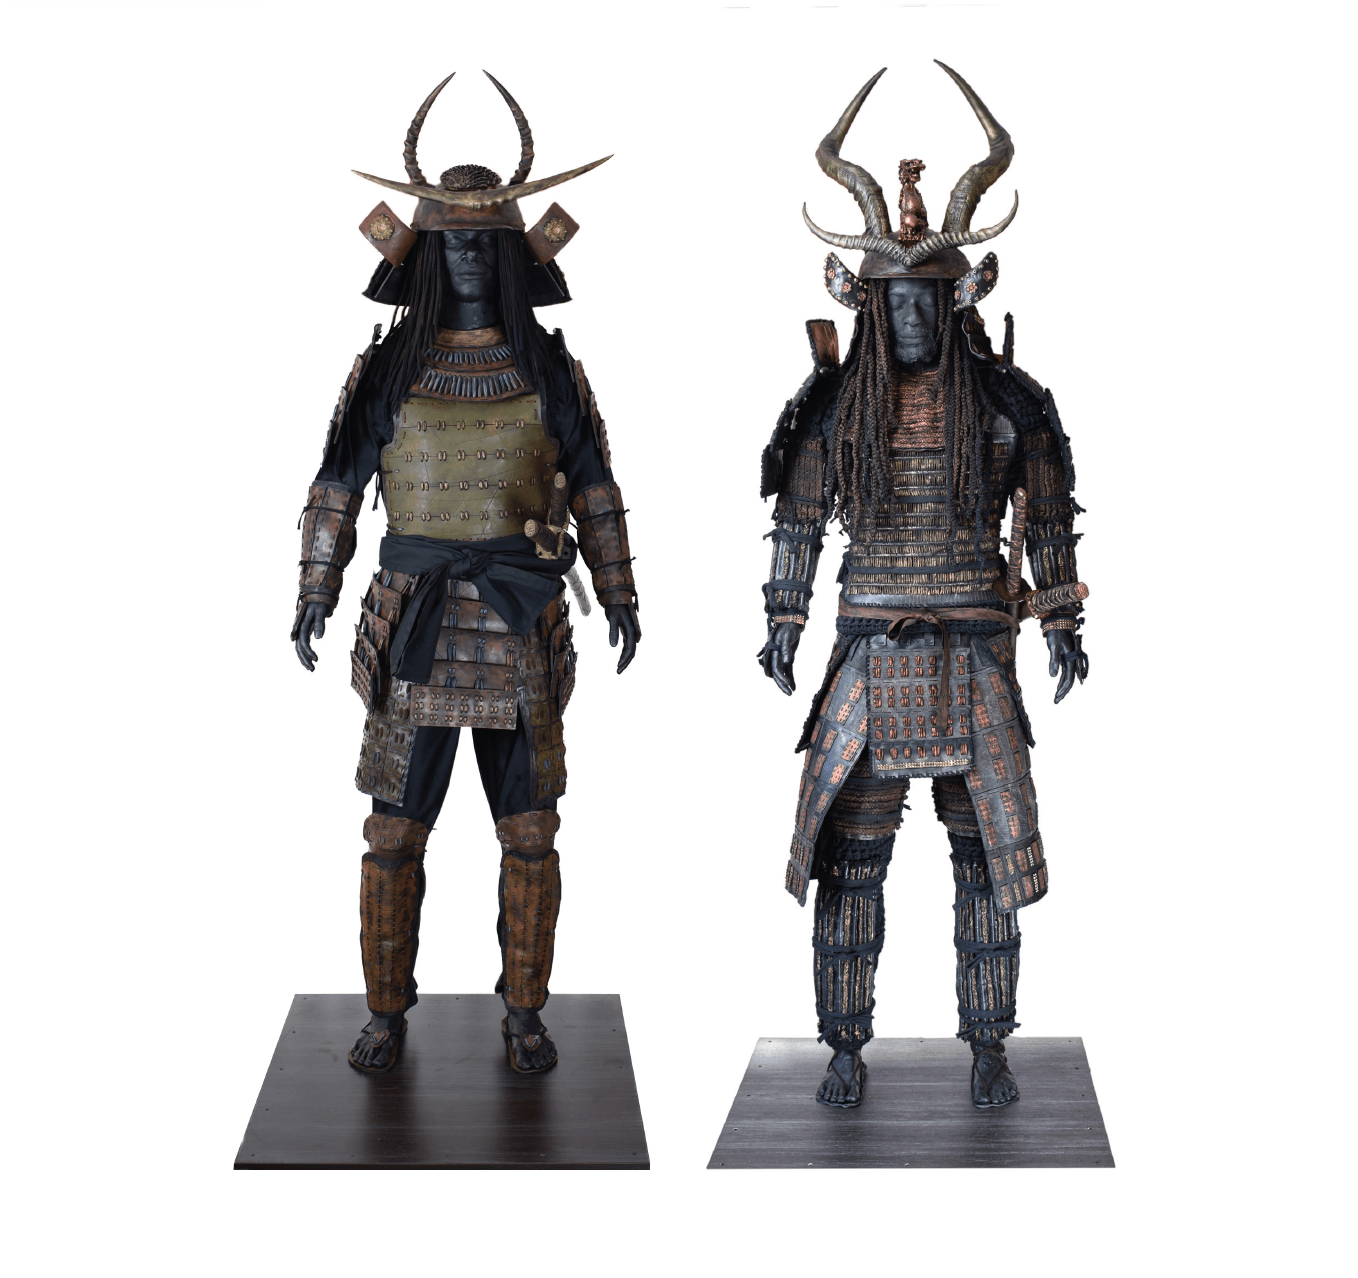 LEFT: Obsidian Samurai XXII, 2020. Polyurethane plastic, used inner tyre tubes, stainless steel, aluminium, wood, polyurethane foam, nails, glass, epoxy resin, cotton cloth, cotton cord, cotton rope, thermoplastic, wax pigment, faux suede, beads, replica katana. Dimensions: 820 x 810 x 2042mm. © Matthew Miller. RIGHT: Obsidian Samurai XVII, 2019. Polyurethane plastic, used inner tyre tubes, stainless steel, aluminium, wood, polyurethane foam, nails, glass, epoxy resin, cotton cloth, cotton cord, cotton rope, thermoplastic, wax pigment, faux suede, beads, replica katana. Dimensions: 820 x 810 x 2120mm. © Matthew Miller